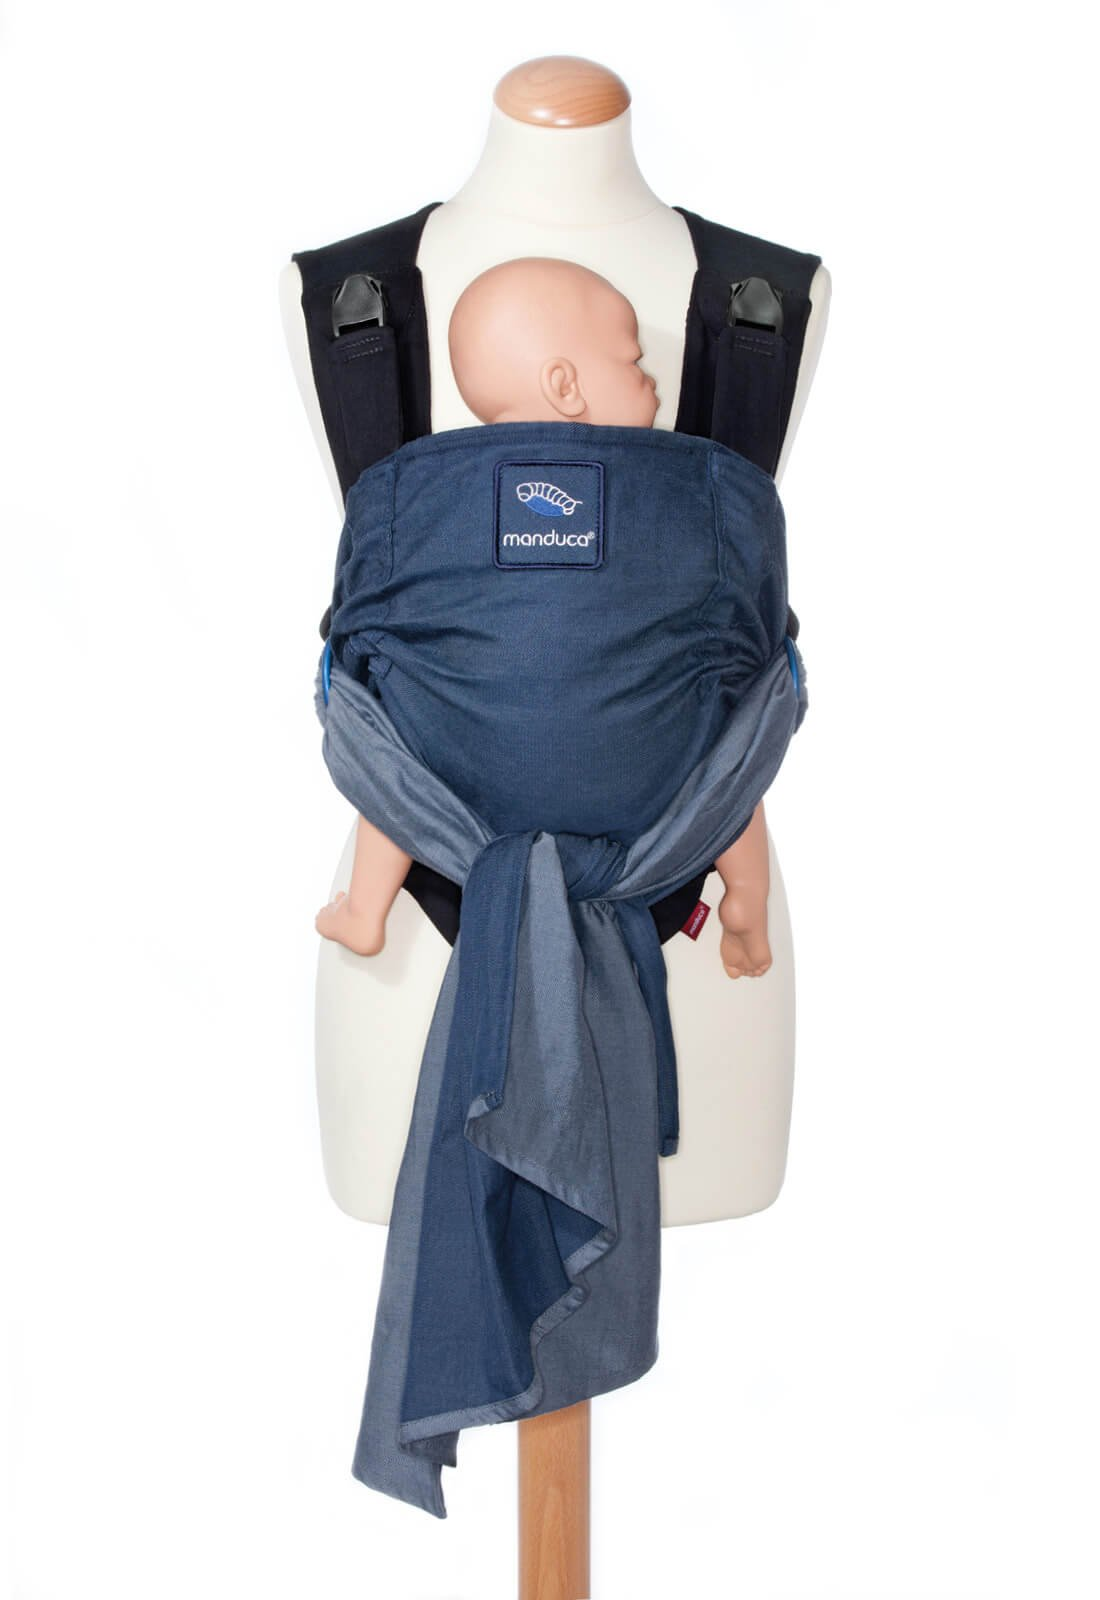 manduca Duo - Hybrid of Baby Carrier and Sling, Innovative Click &Tie System, Baby Slip-Through-Protection, Removable Hip Belt, Organic Cotton and Mesh, from Birth to 15kg (Blue) Manduca Optimized as front carrier, with slip-through protection (secure fit for your baby), supports the M position, for newborns from birth to infants up to 15 kg Especially popular with first-time parents who find it difficult to choose between a sling and a comfort carrier with buckles. Easy to use, illustrated instructions Detachable hip belt, which is only zipped on when needed (up to 140cm circumference without belt extension). Ideal for mothers with sensitive belly and after cesarean section, good weight distribution, comfortable on the shoulders. 4